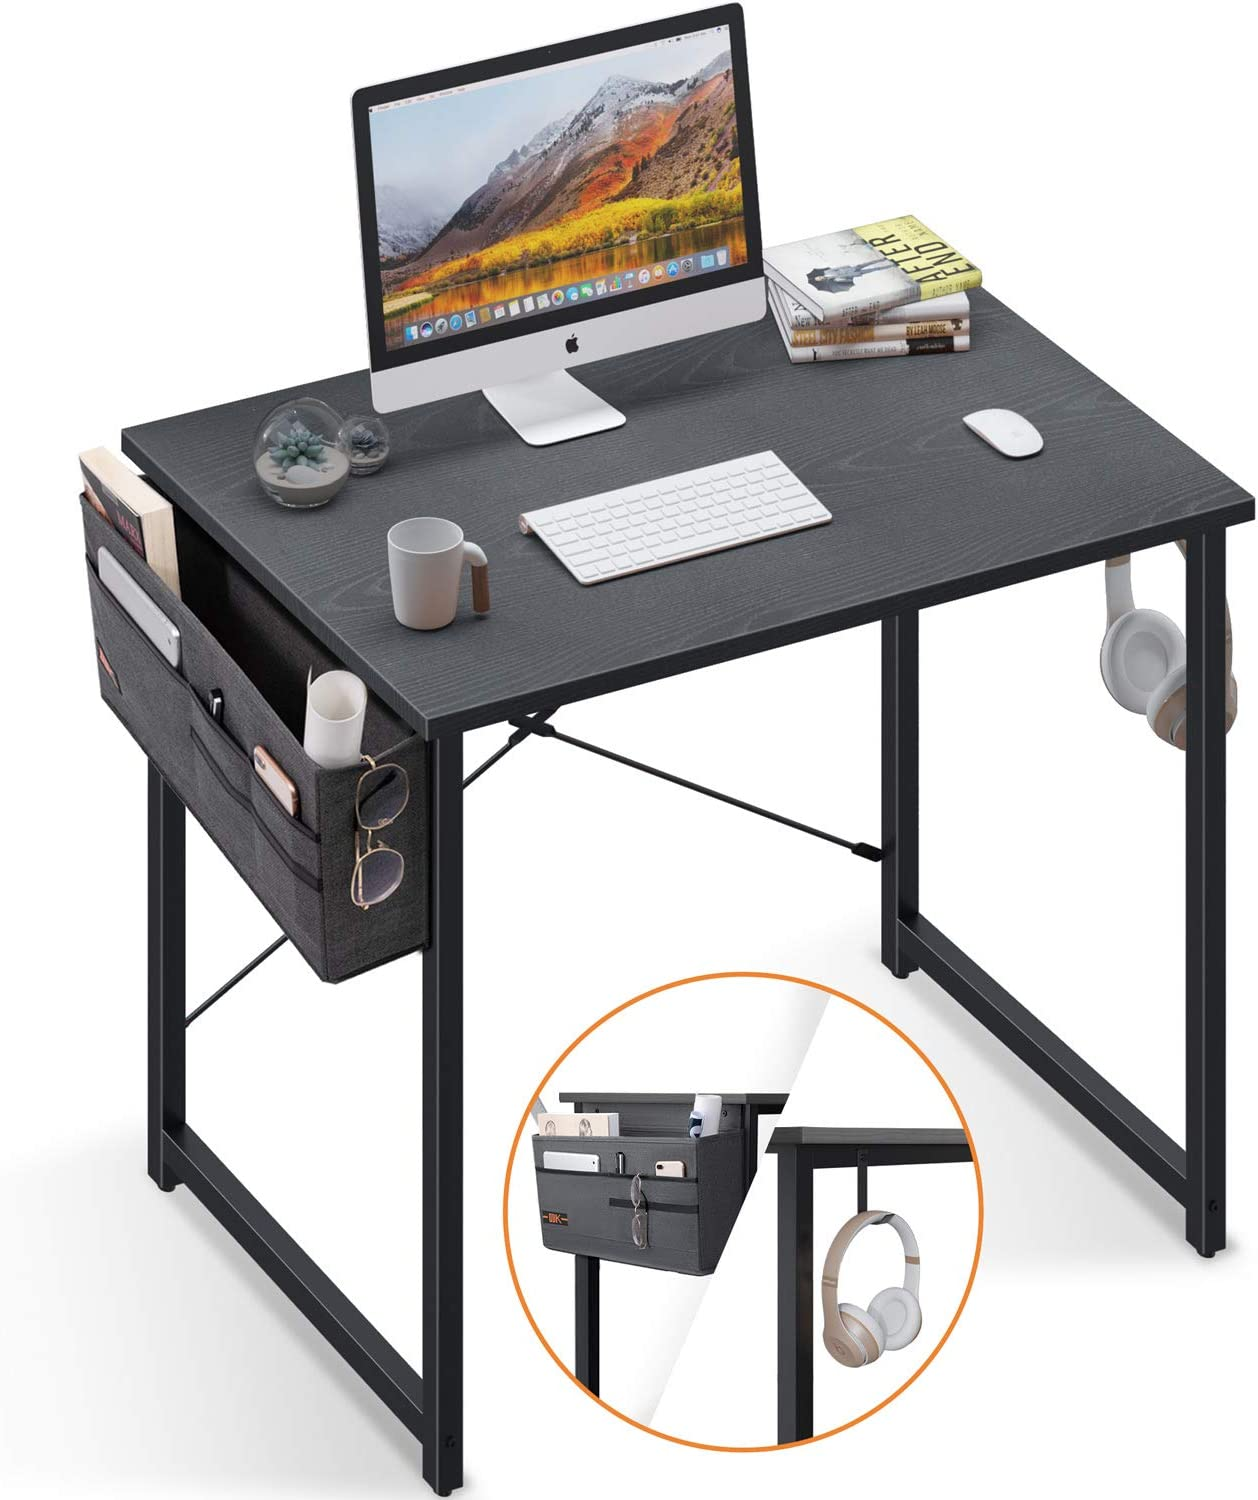 Computer Writing Desk 31 inch, Sturdy Home Office Table, Work Desk with A Storage Bag and Headphone Hook, Espresso Gray